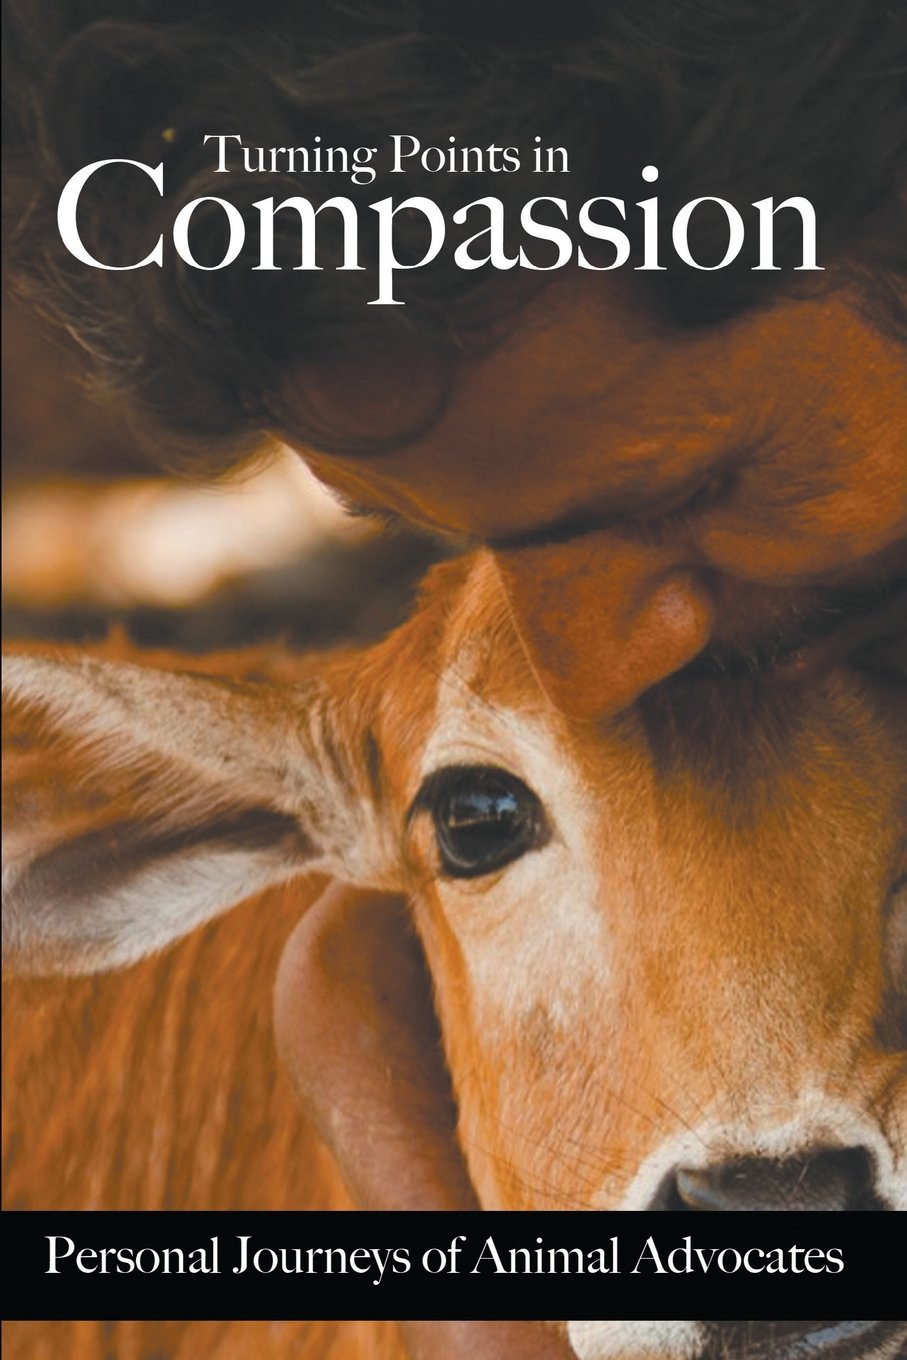 compassion essays dominus vobiscum et cum spiritu tuo god of mercy  turning points in compassion personal journeys of animal turning points in compassion personal journeys of animal